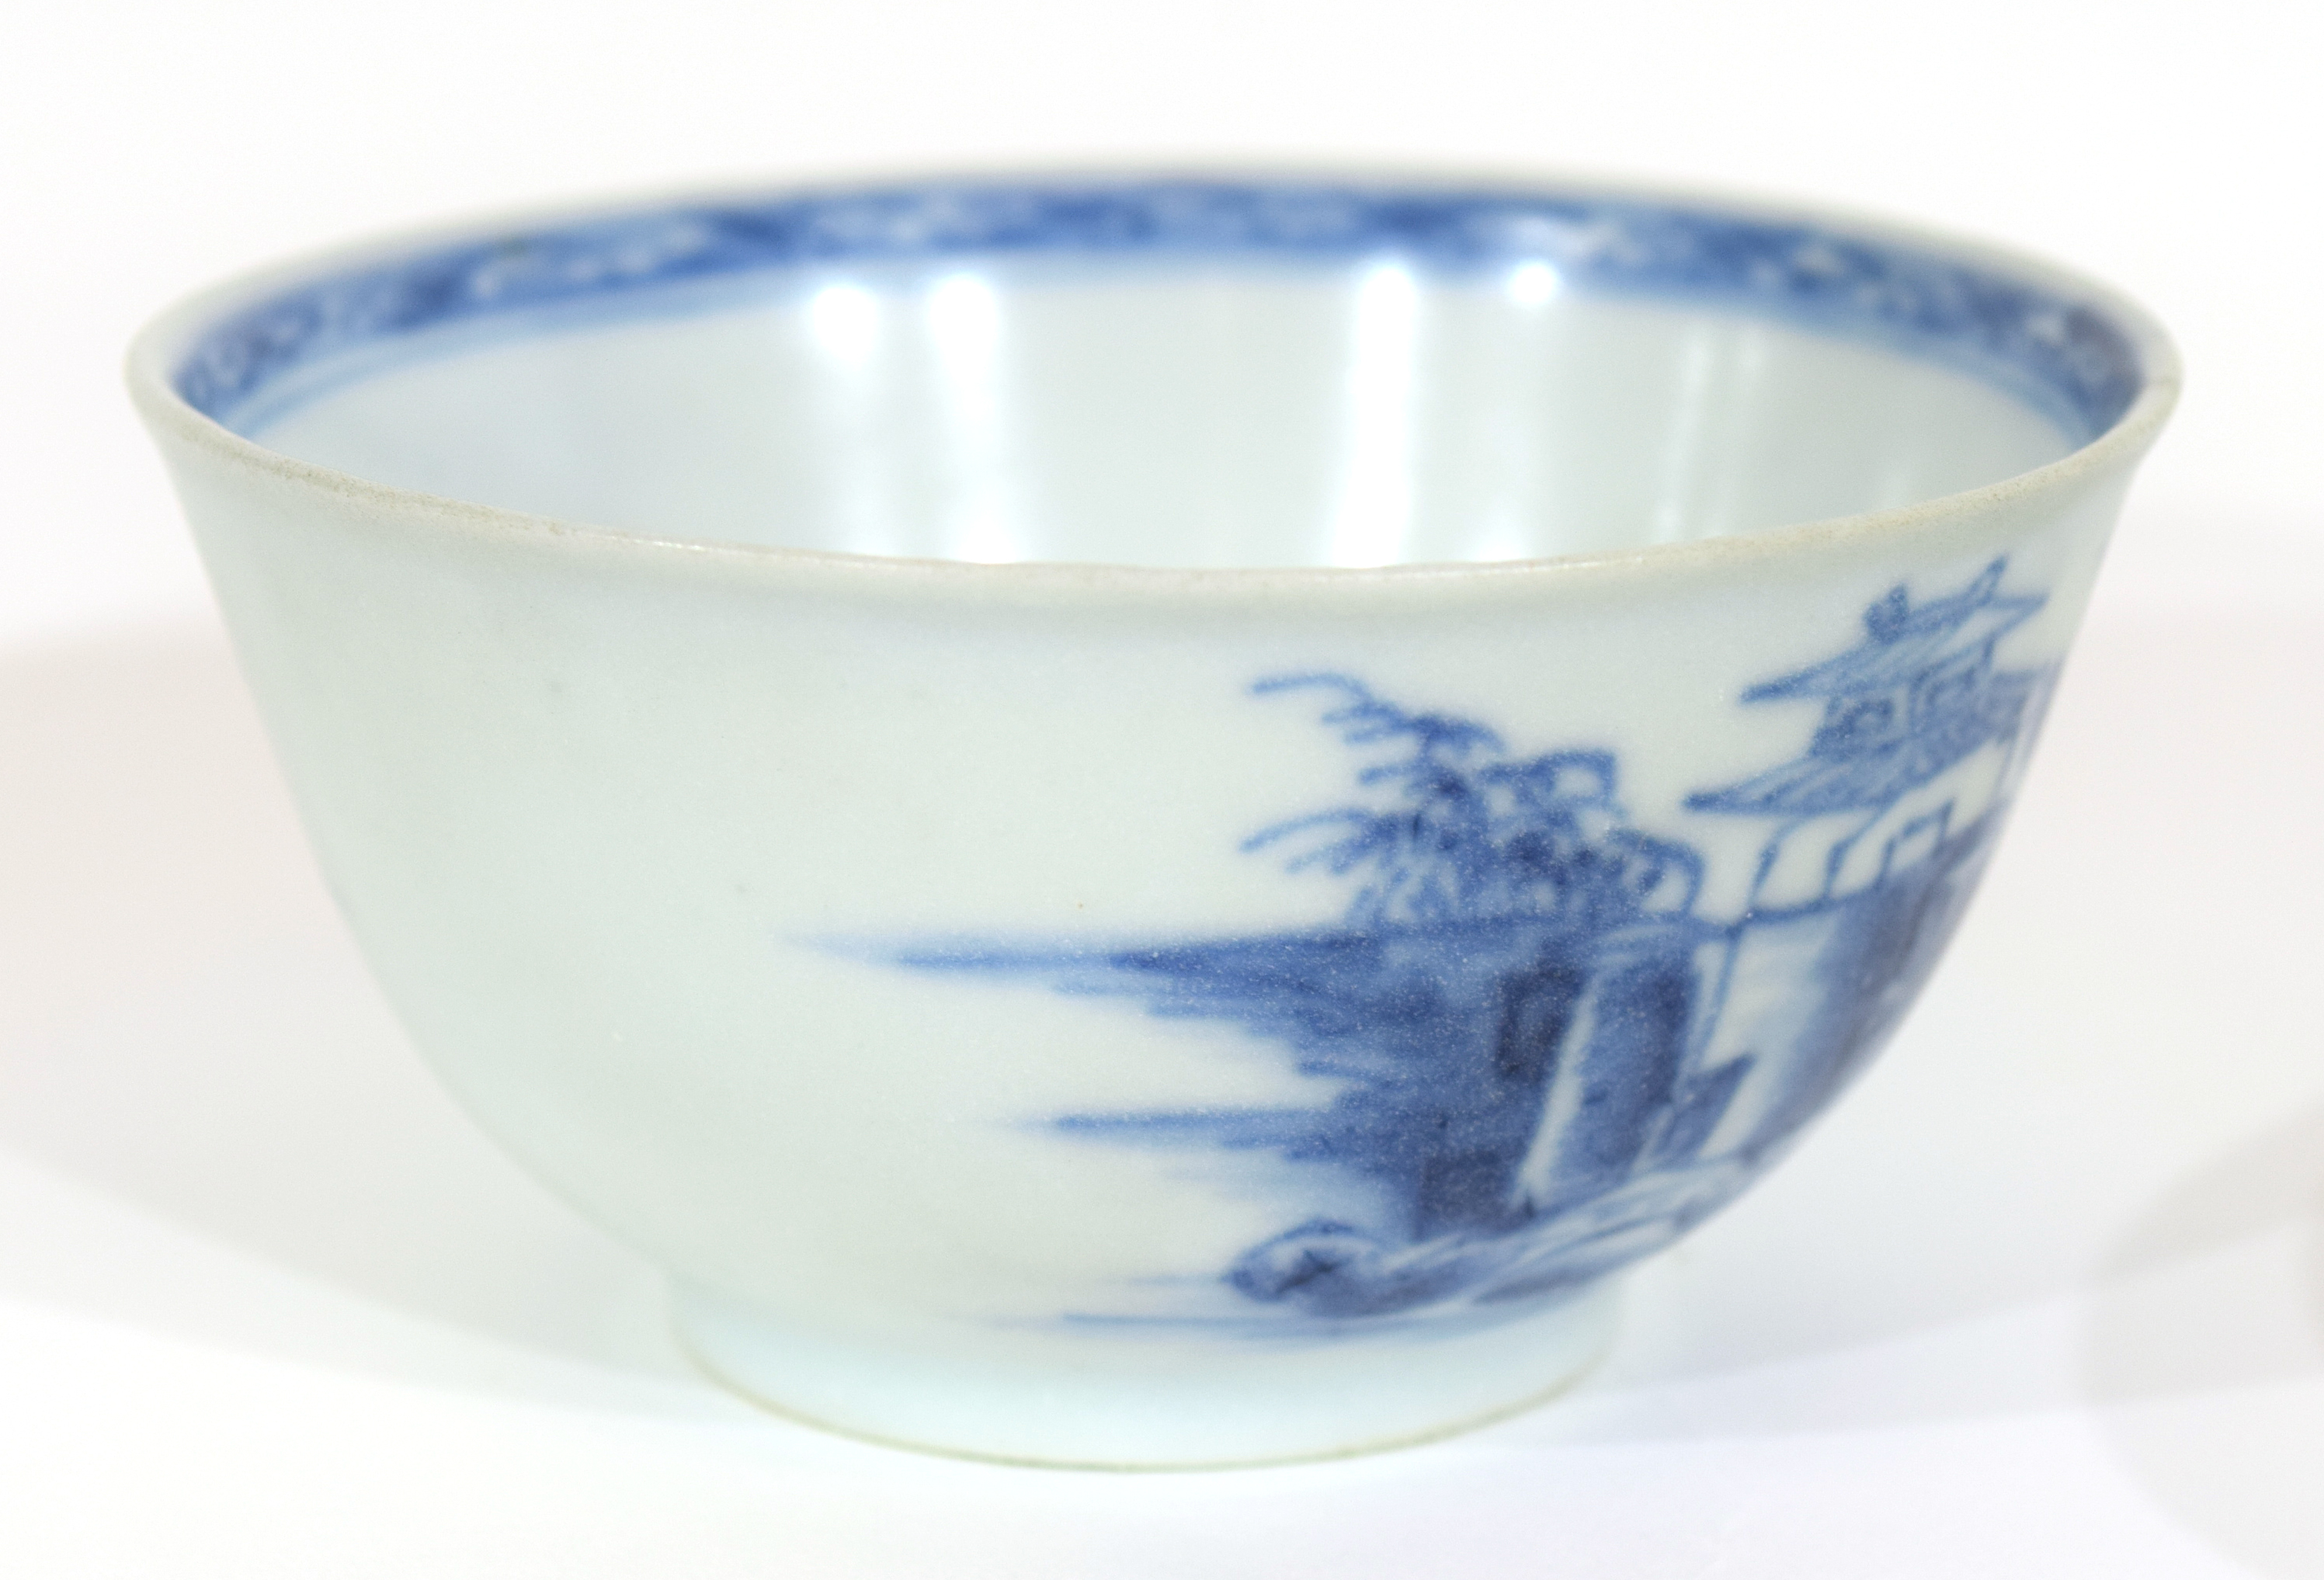 18th century Chinese porcelain Nanking Cargo tea bowl and saucer - Image 13 of 15